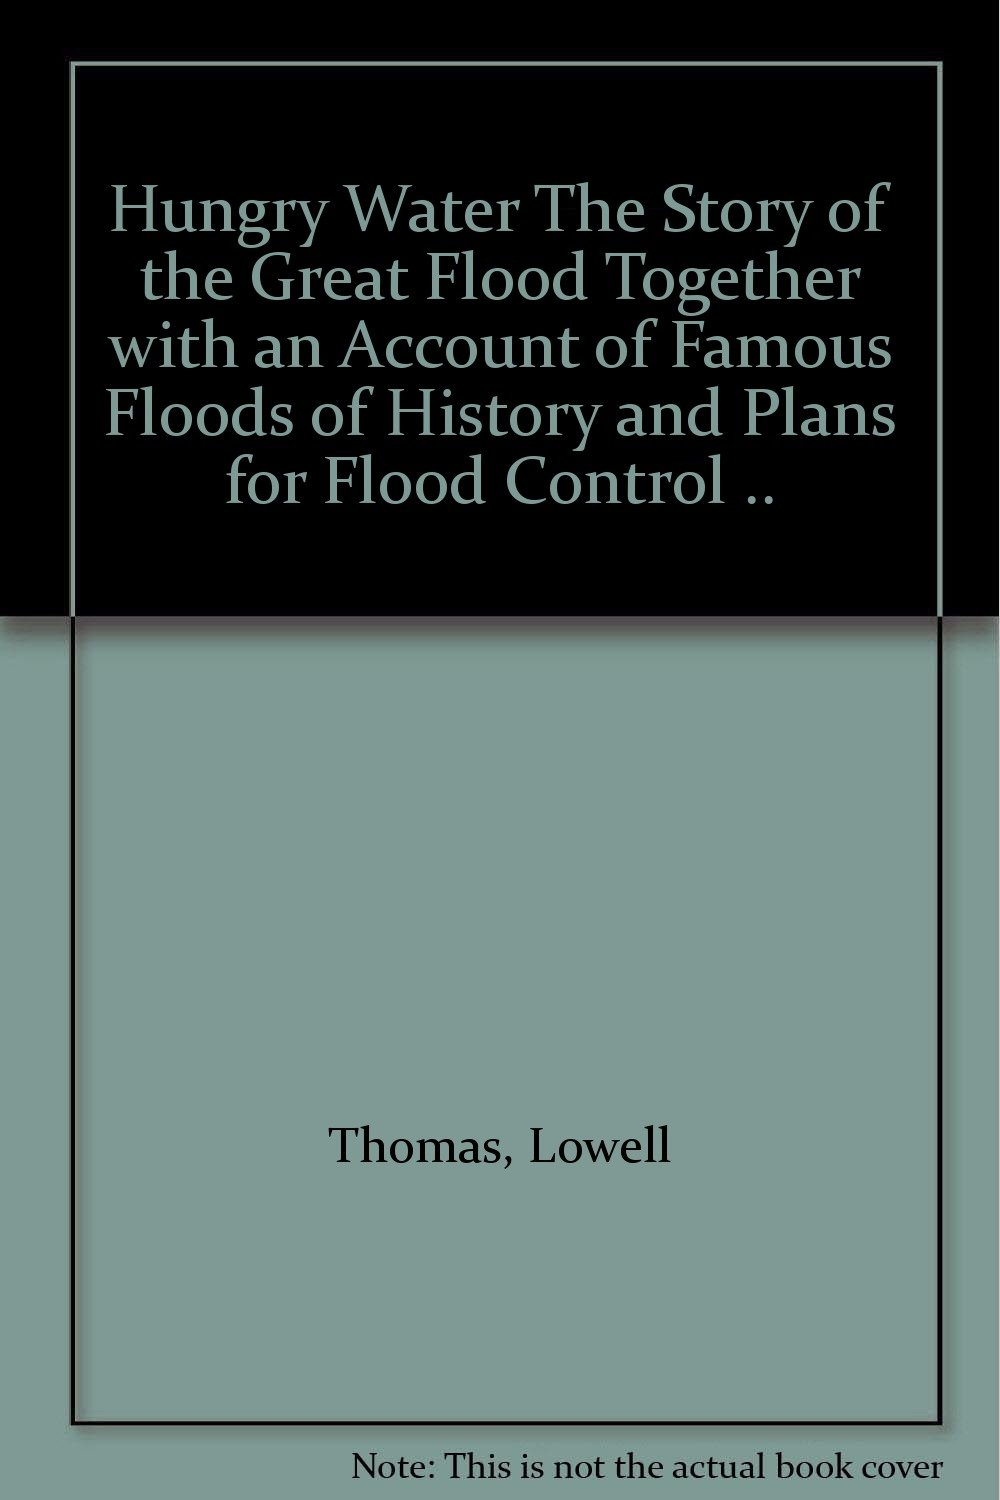 Hungry Water The Story of the Great Flood Together with an Account of Famous Floods of History and Plans for Flood Control ..